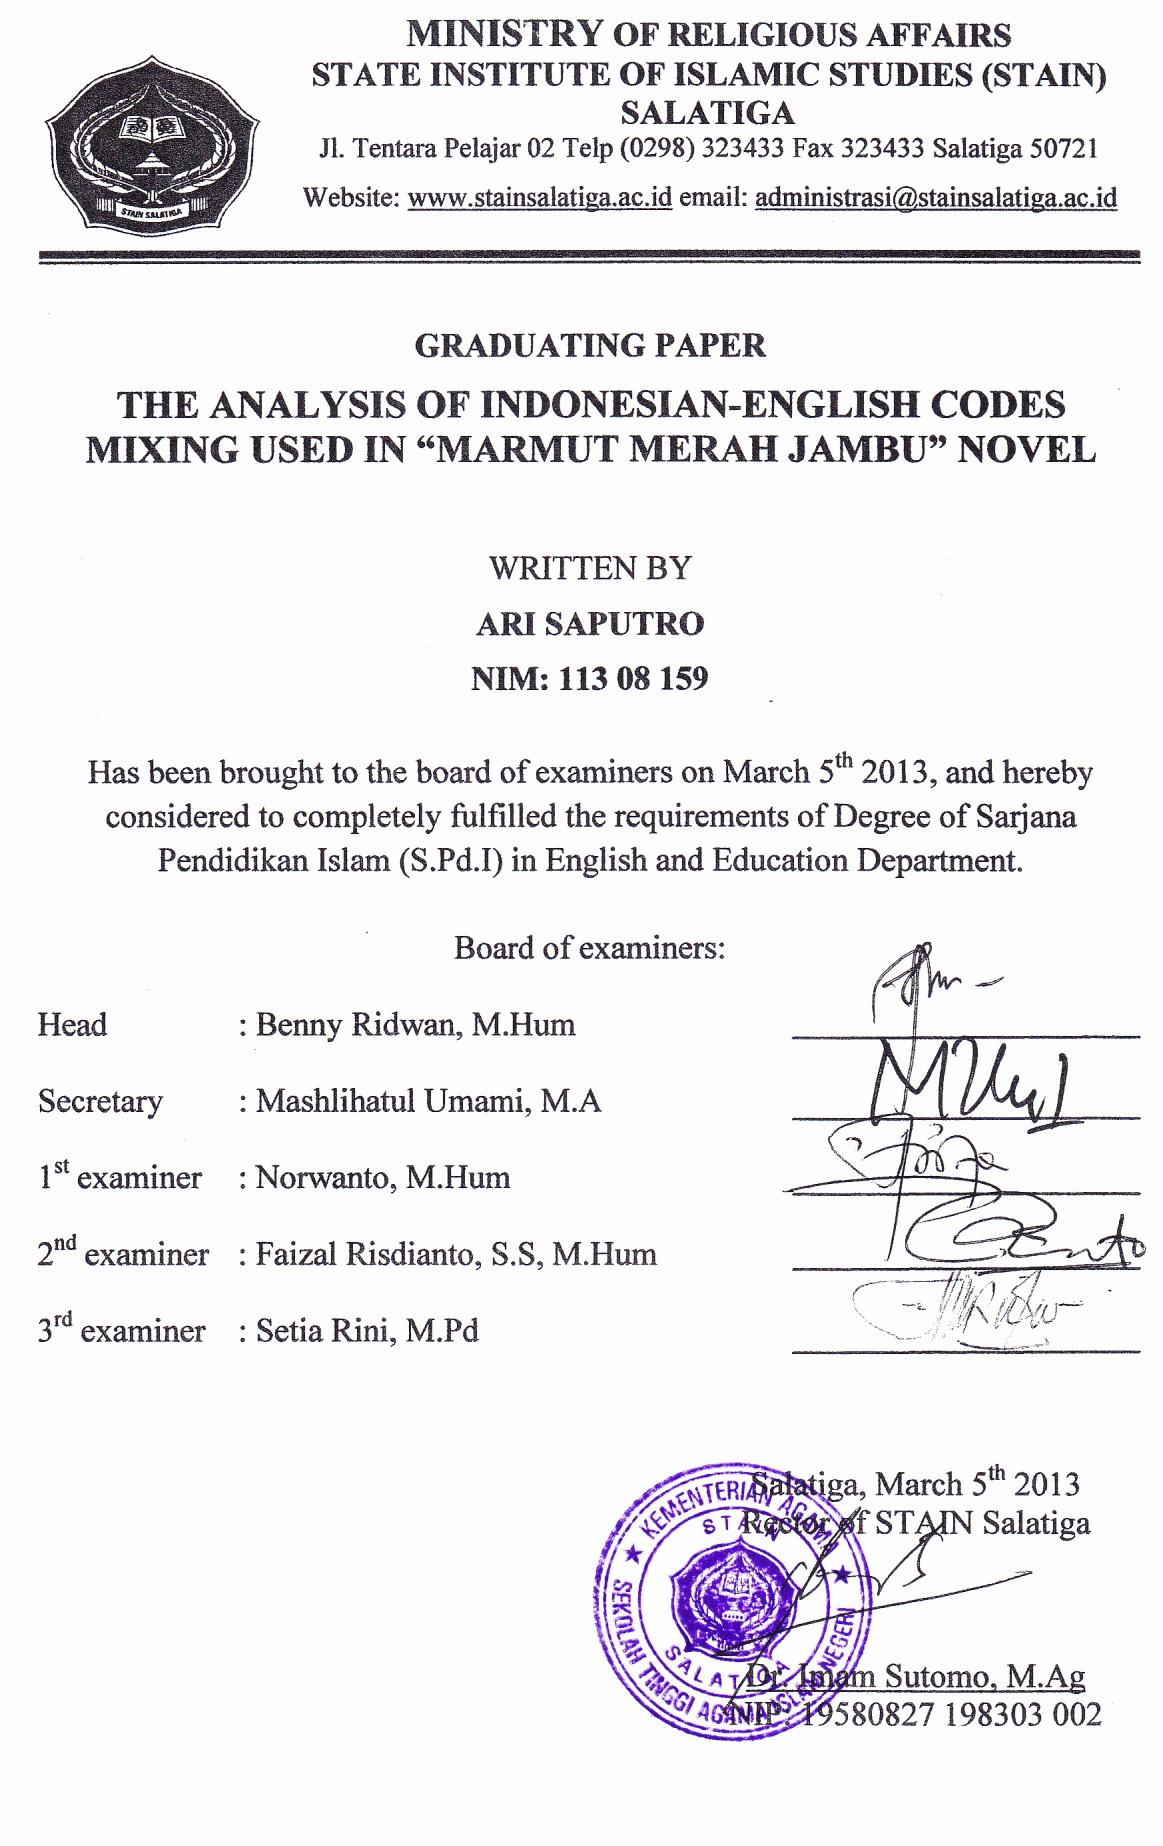 id GRADUATING PAPER THE ANALYSIS OF INDONESIAN-ENGLISH CODES MIXING USED IN MARMUT MERAH JAMBU NOVEL WRITTEN BY ARI SAPUTRO NIM: 113 08 159 Has been brought to the board of examiners on March 5 th